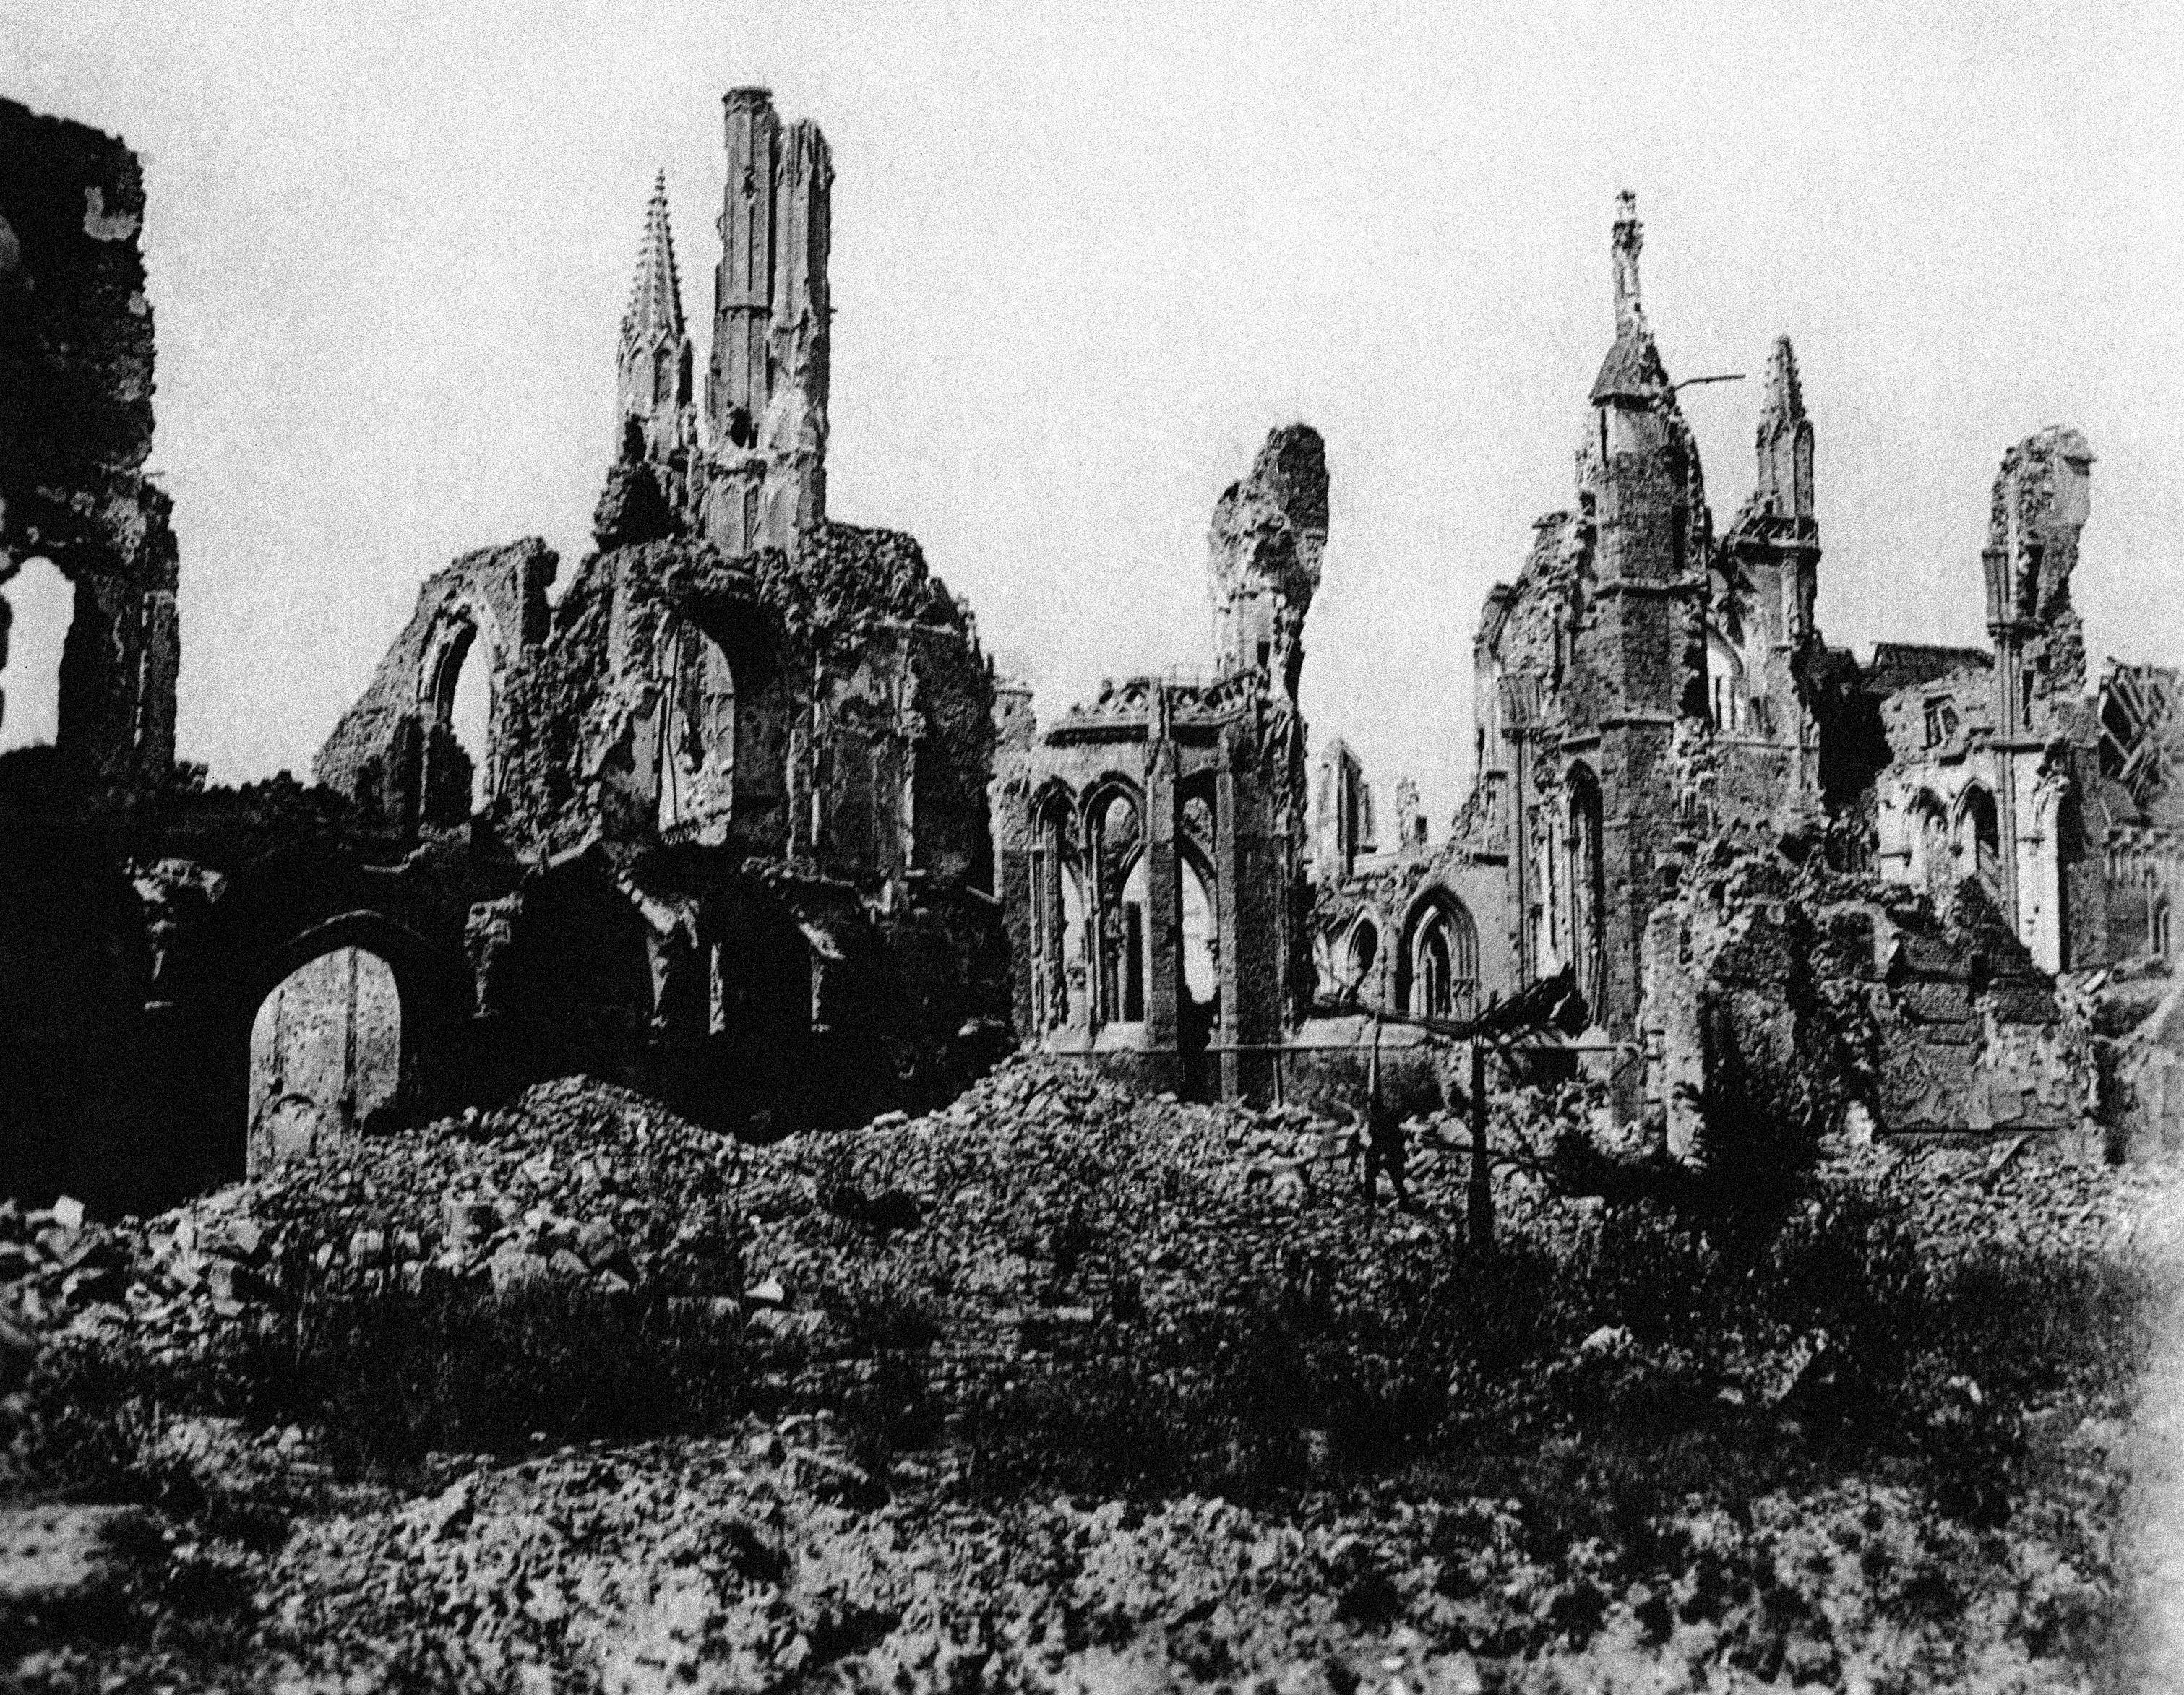 67 OF 100: In this undated file photo, the cathedral in the town square of Ypres, Belgium, is in ruins after bombing in World War I.